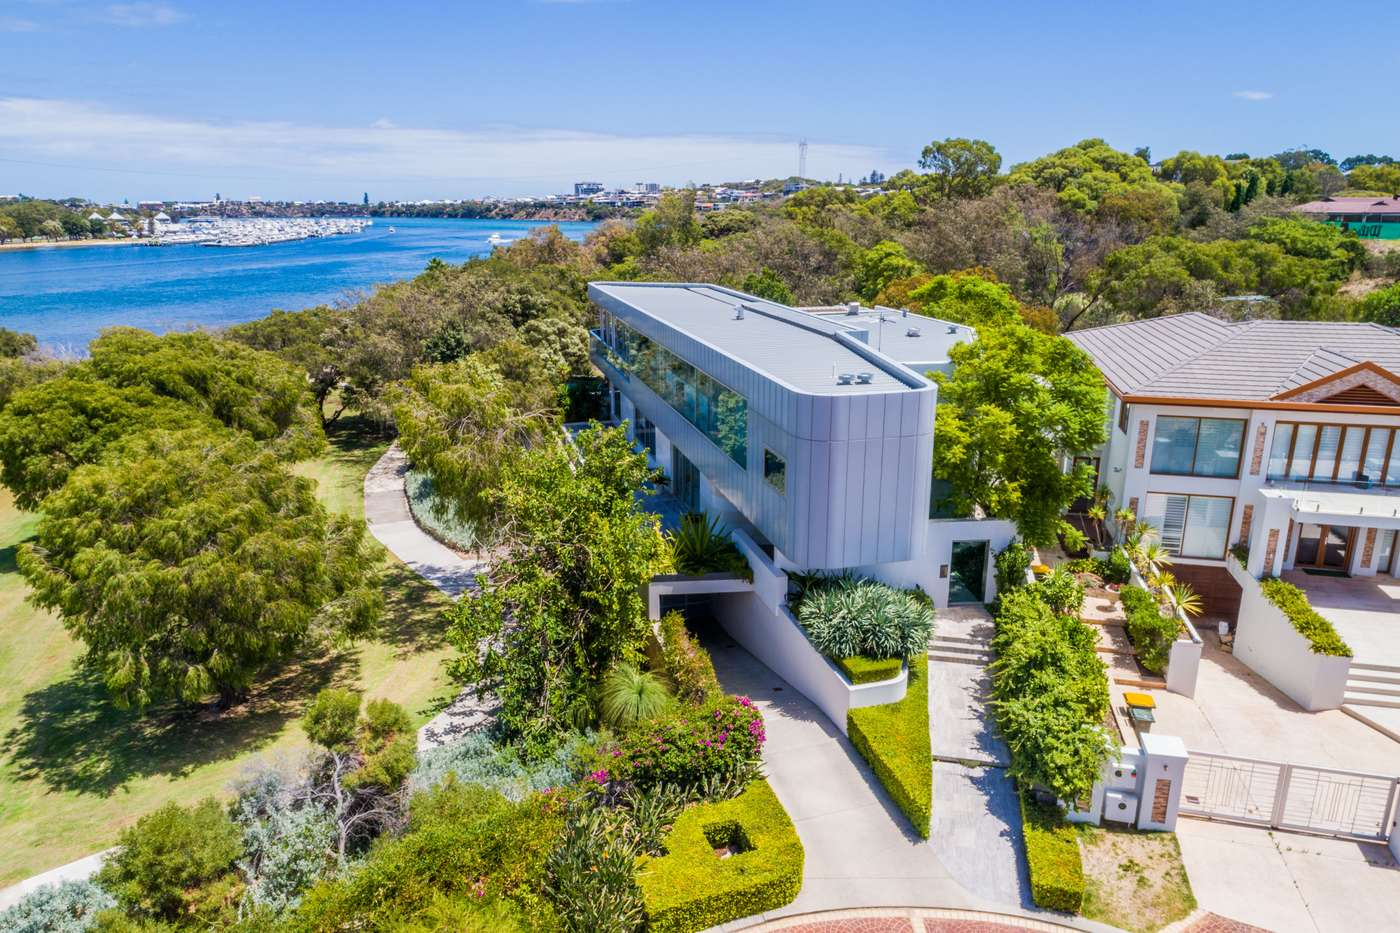 Main view of Homely house listing, Address available on request, Mosman Park, WA 6012